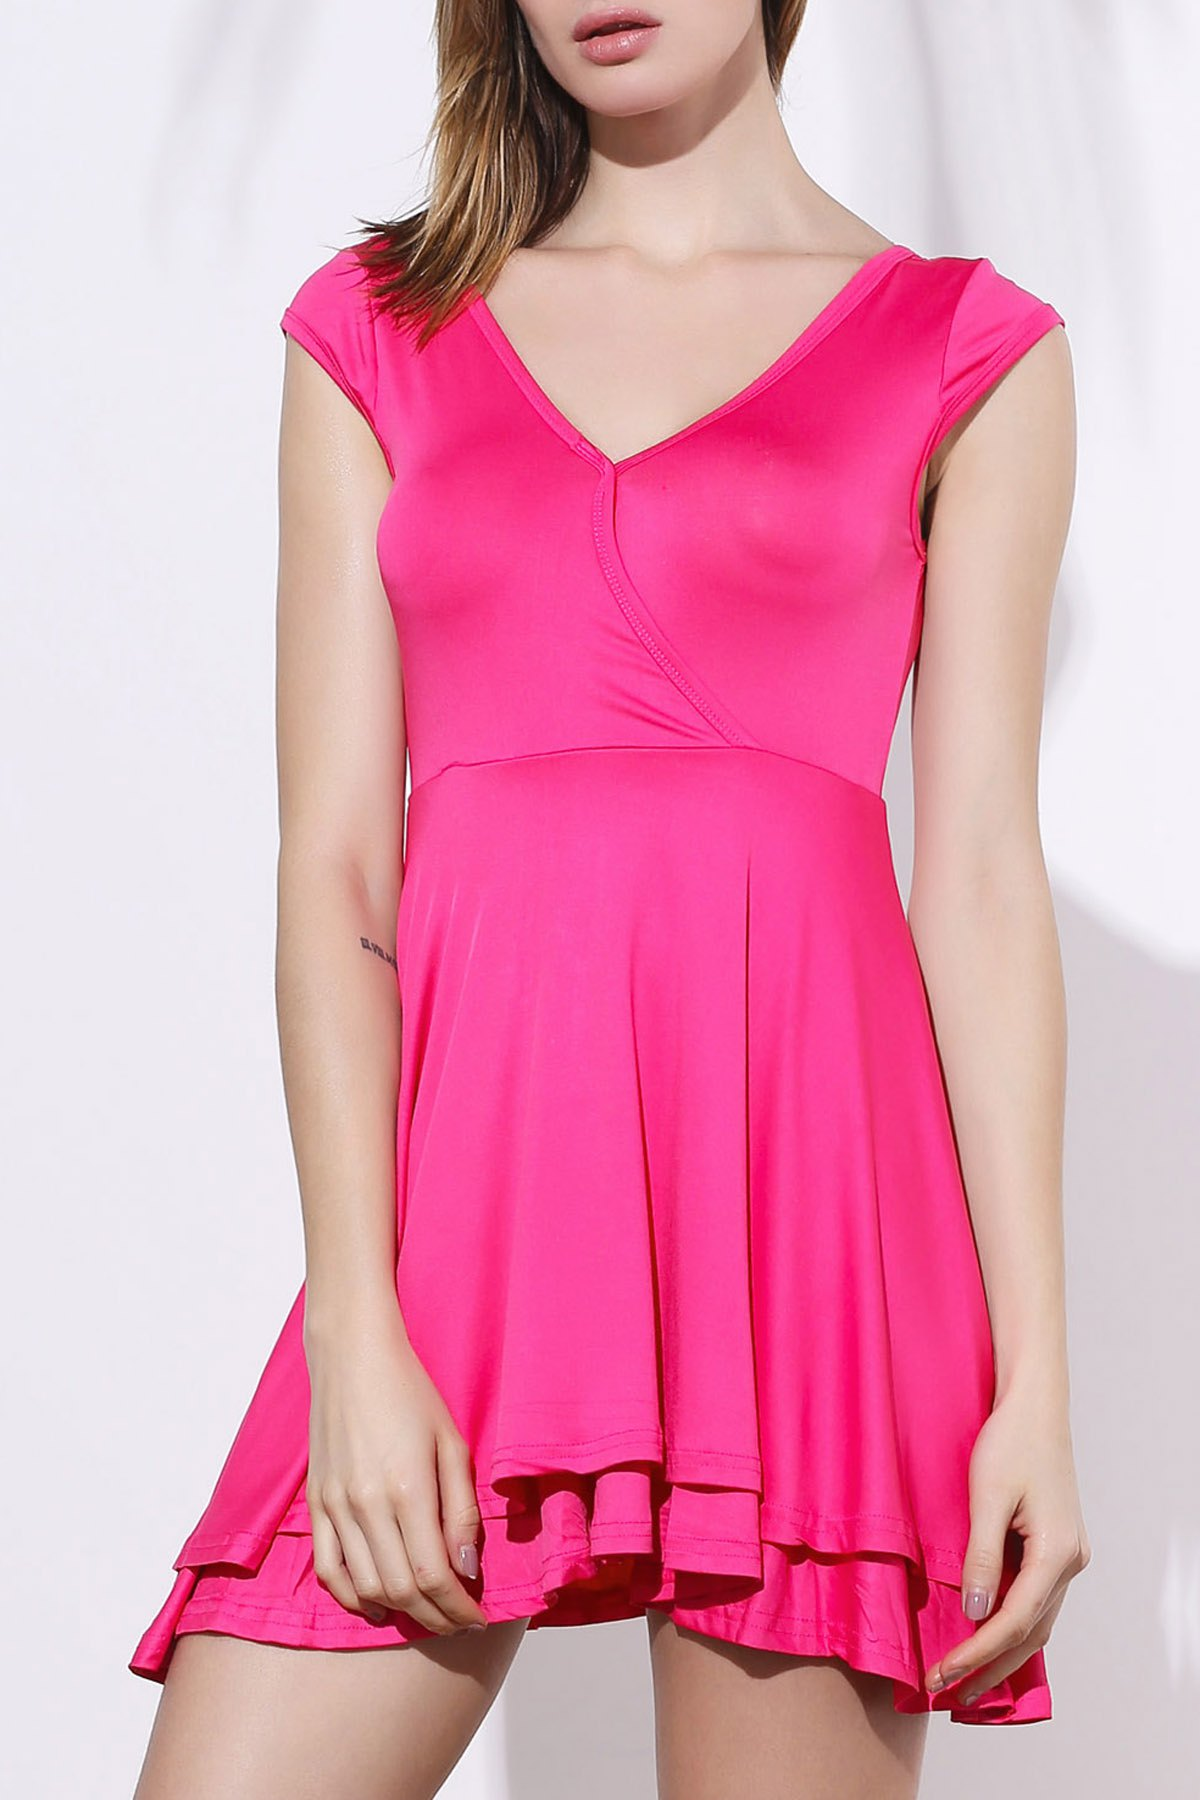 Trandy Pink Plunging Neck A-Line Dress For Women